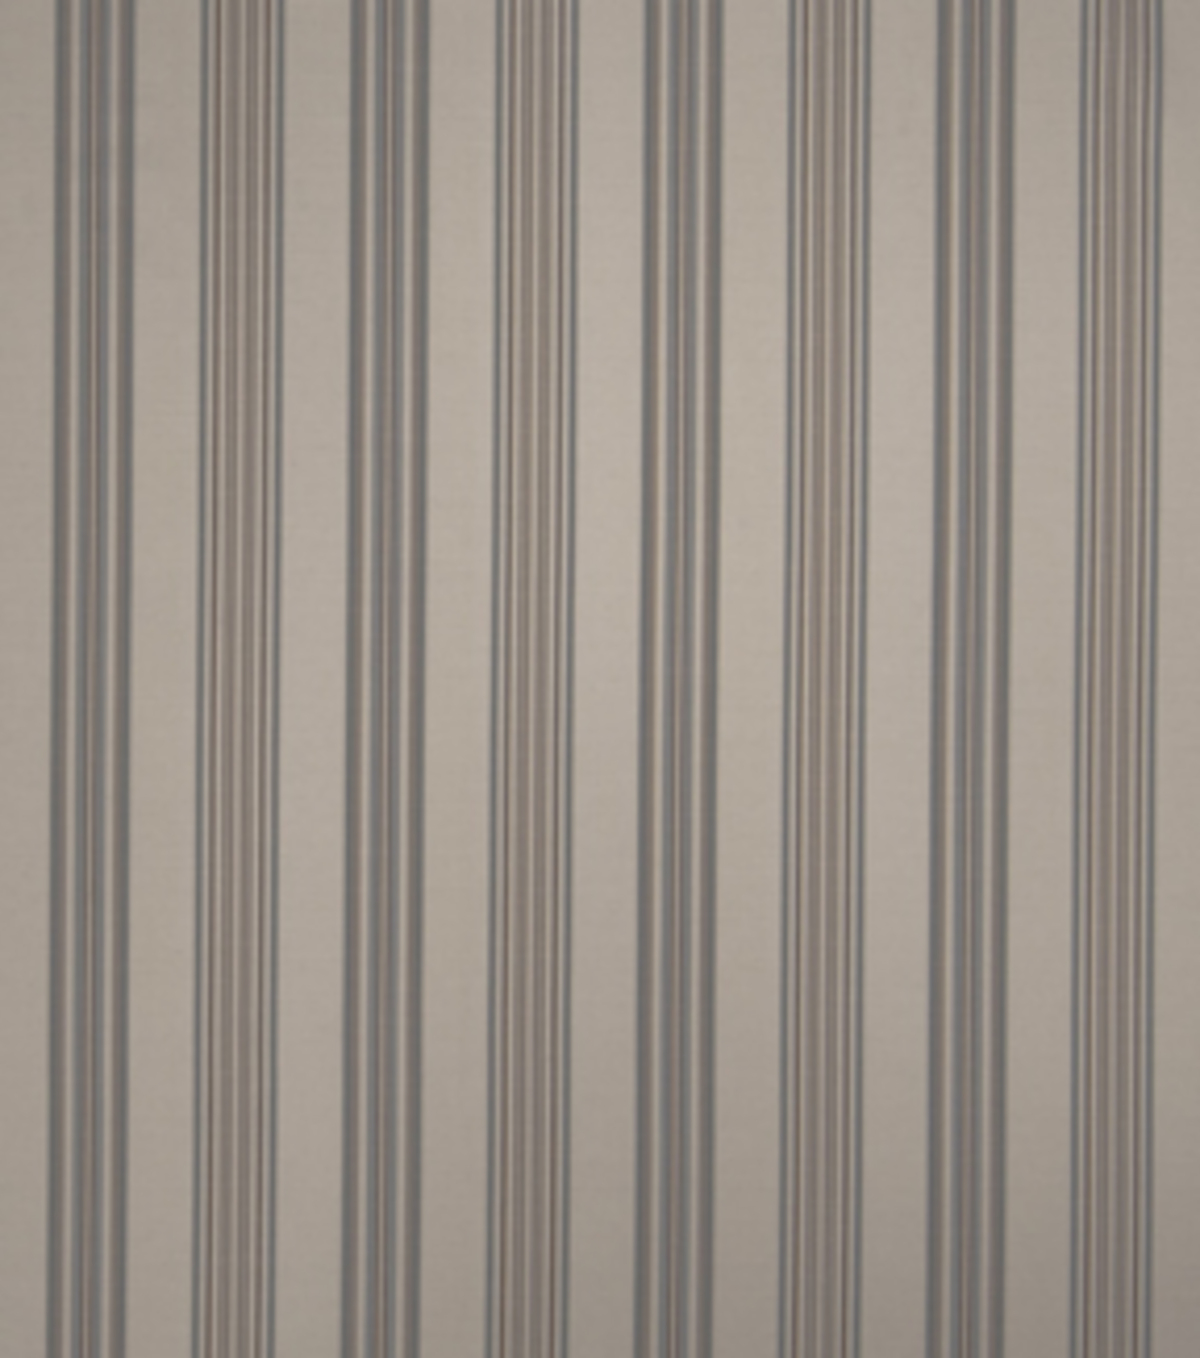 Home Decor 8\u0022x8\u0022 Fabric Swatch-Eaton Square Greenbelt Moonhaze